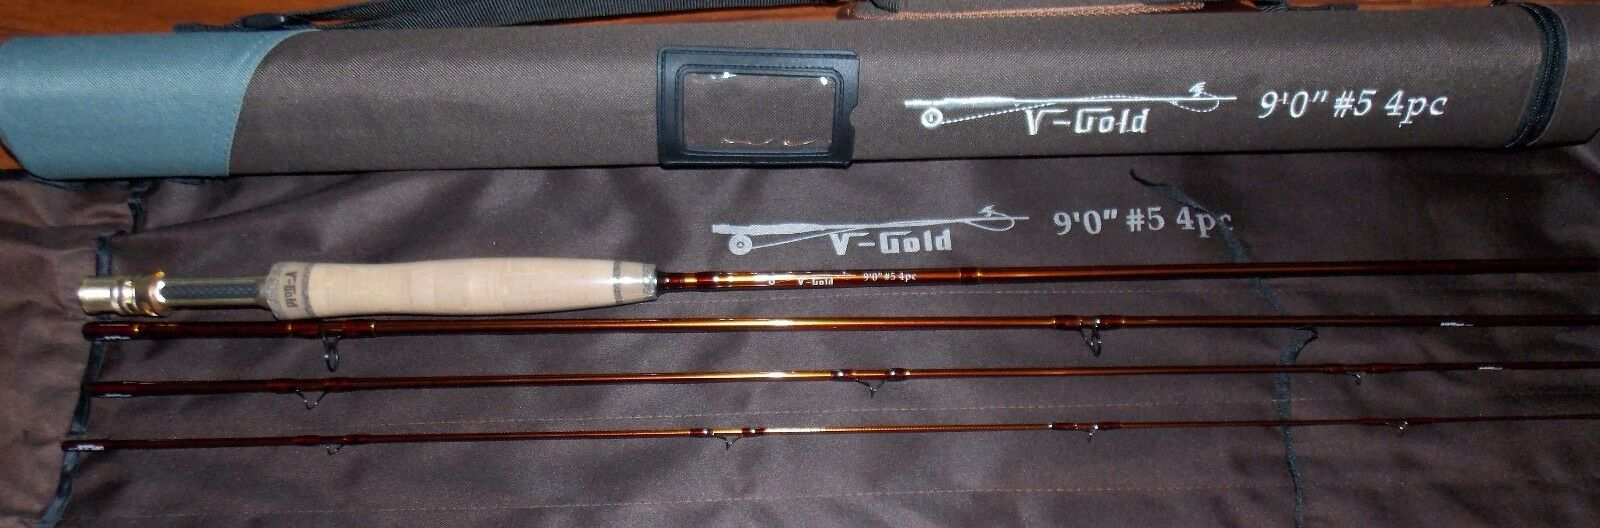 5WT Fly Fishing Rod 9FT 4Piece Graphite IM12 &Cordura Tube FREE 3 DAY DELIERY